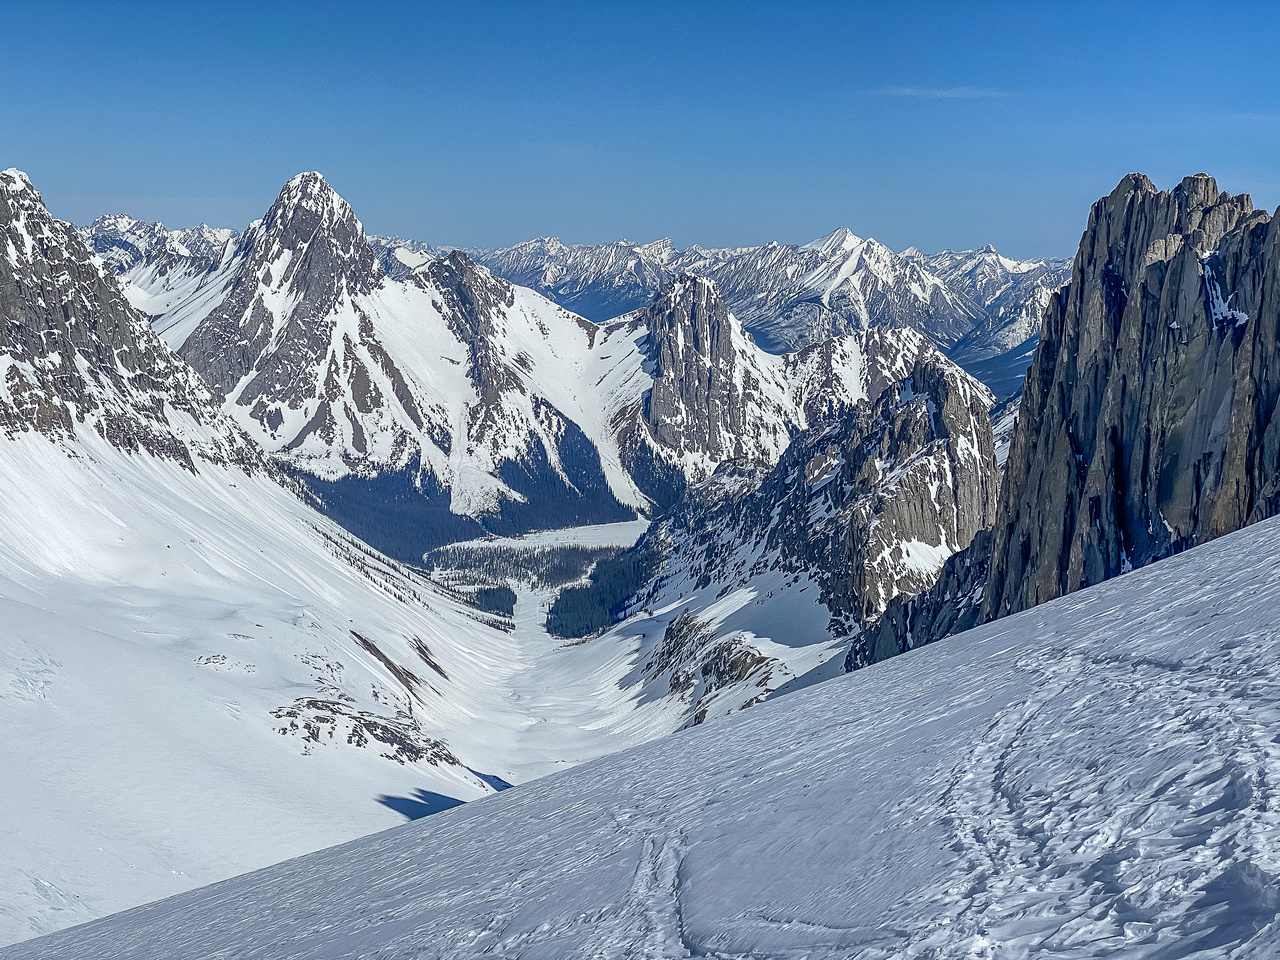 Views down the Robertson Glacier to Birdwood, Pig's Tail and Commonwealth Peak.